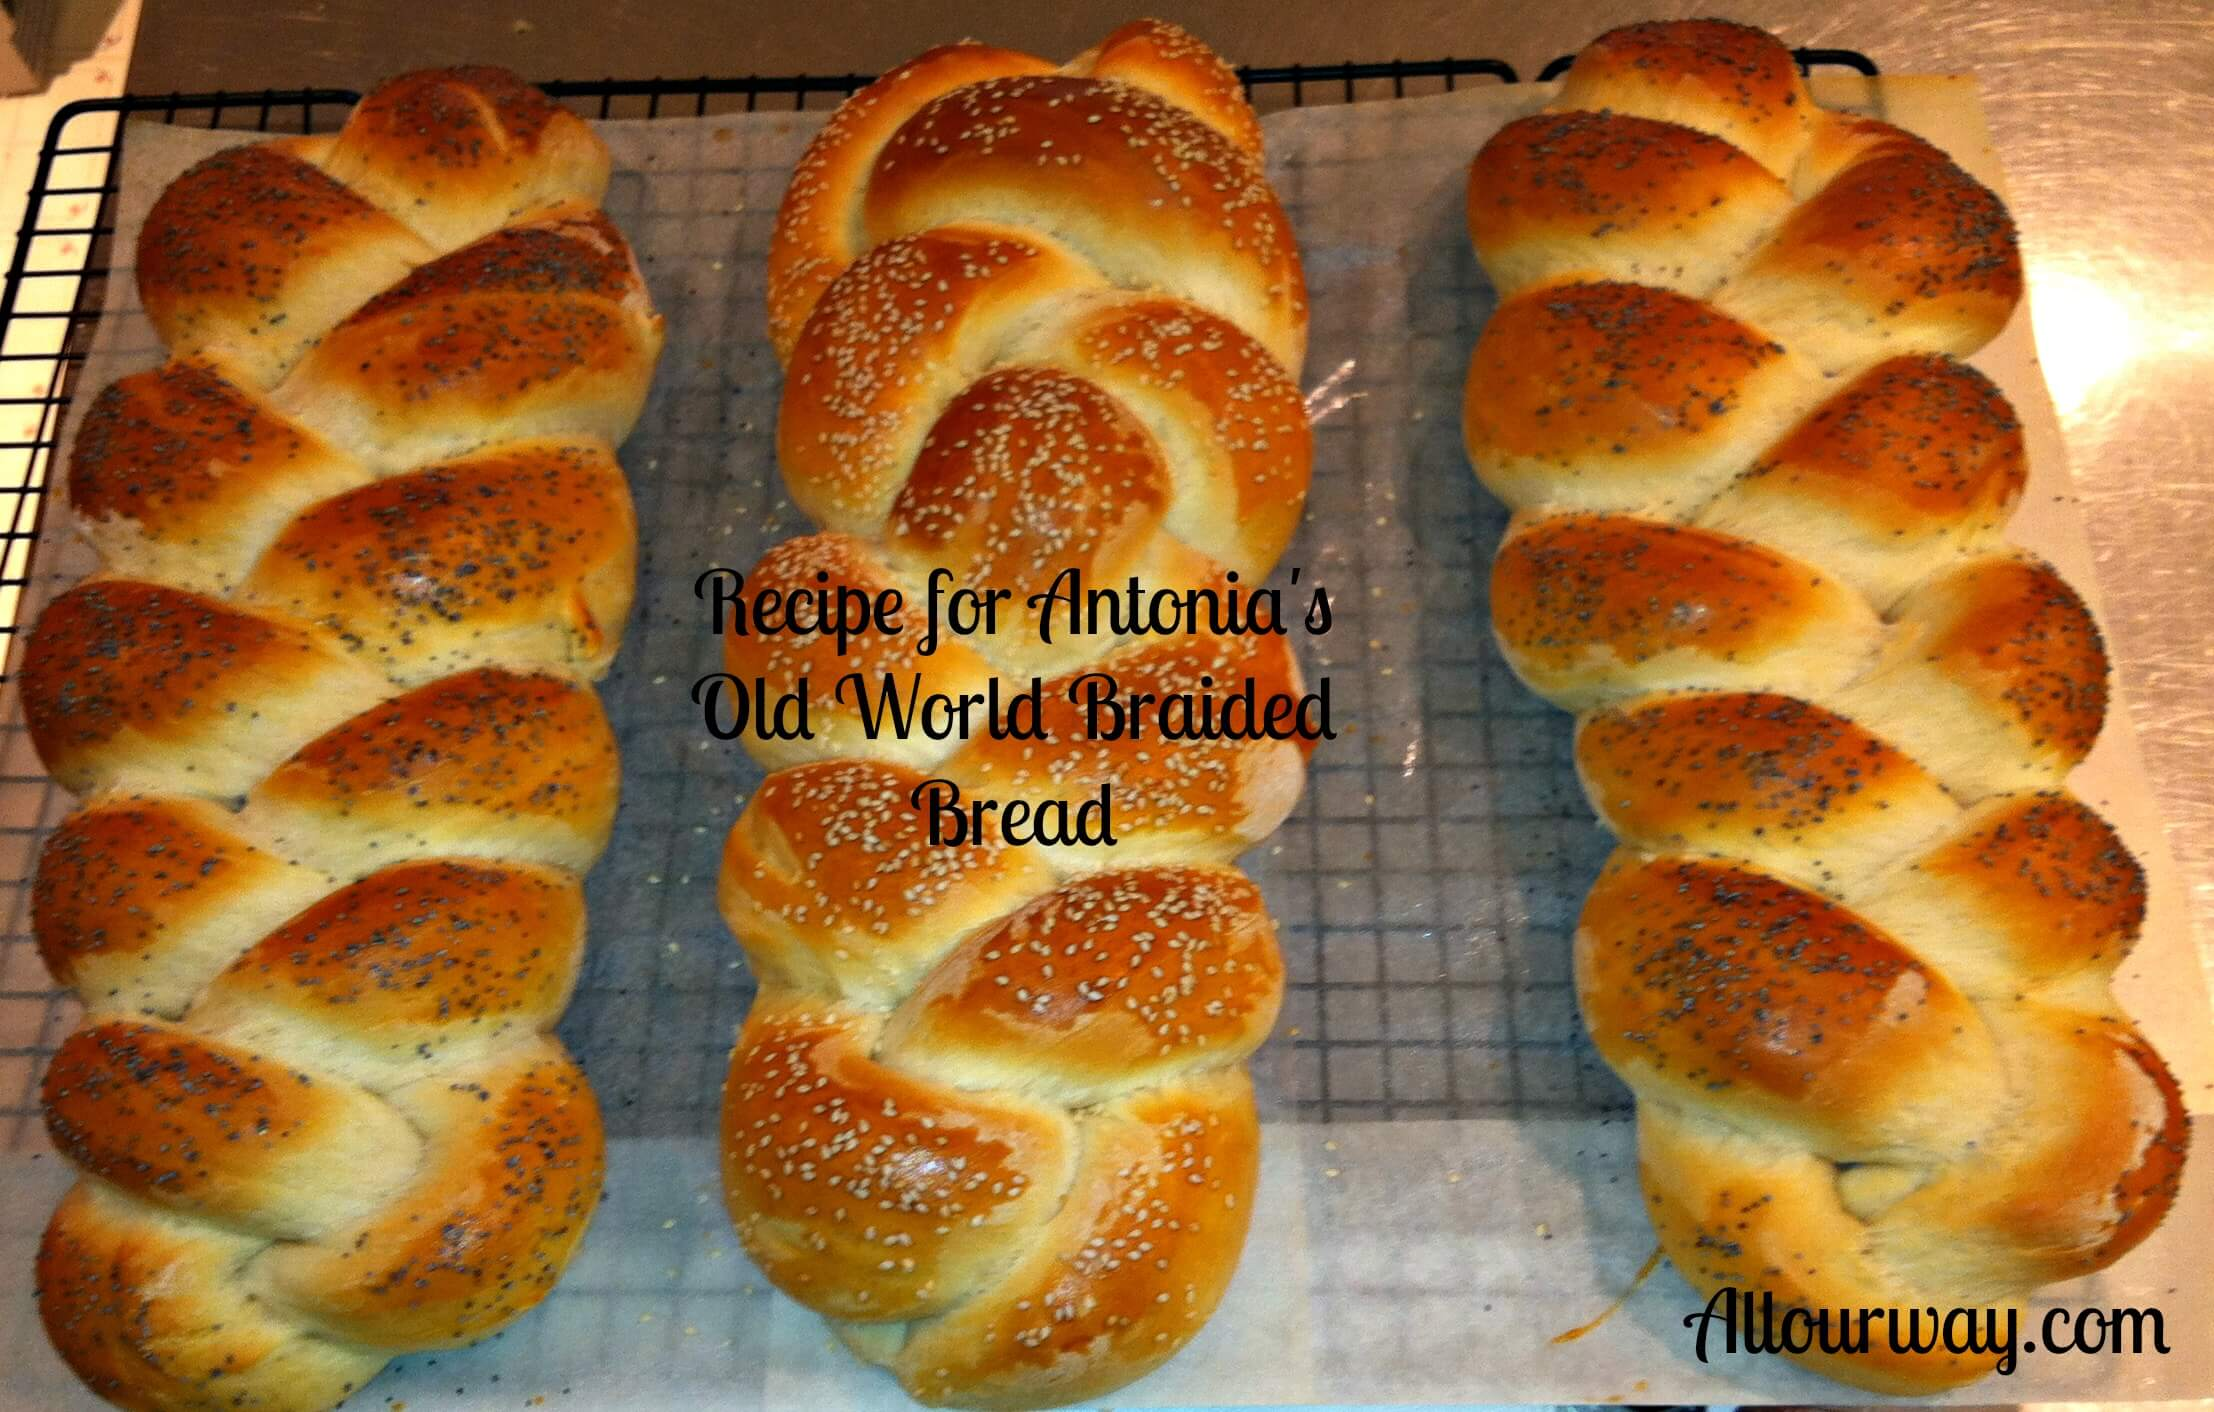 Antonia's Old World braided Bread at Allourway.com